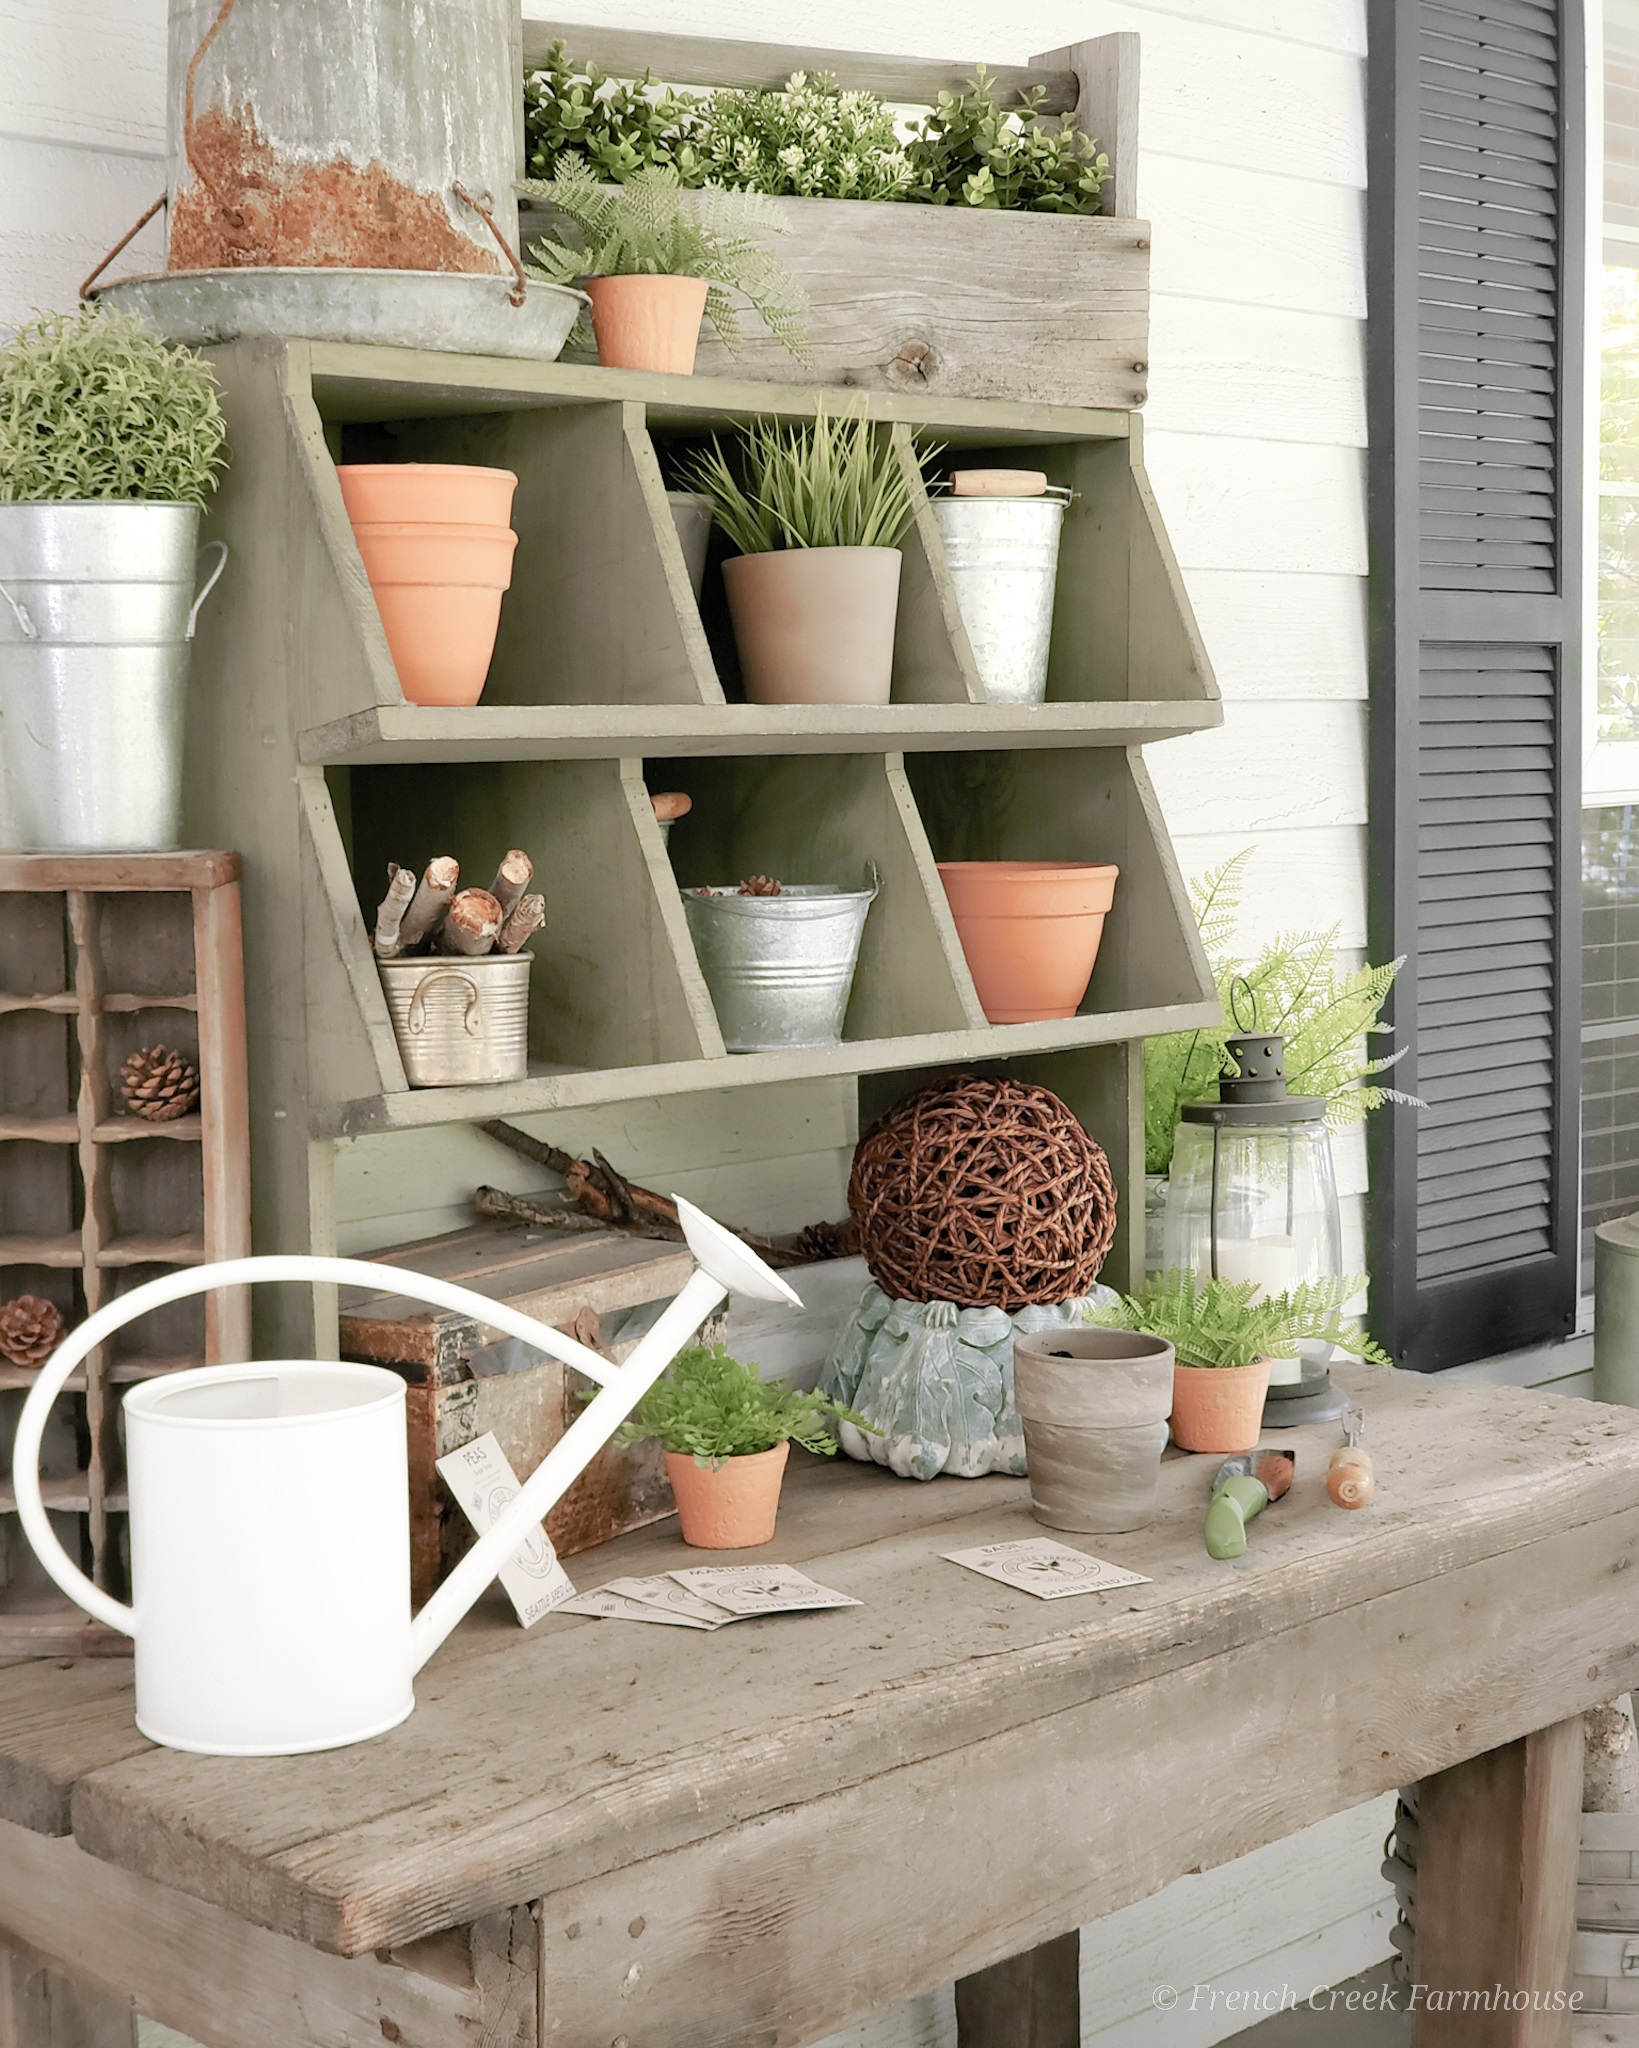 A chicken nesting box creates cubbies for storing our gardening supplies